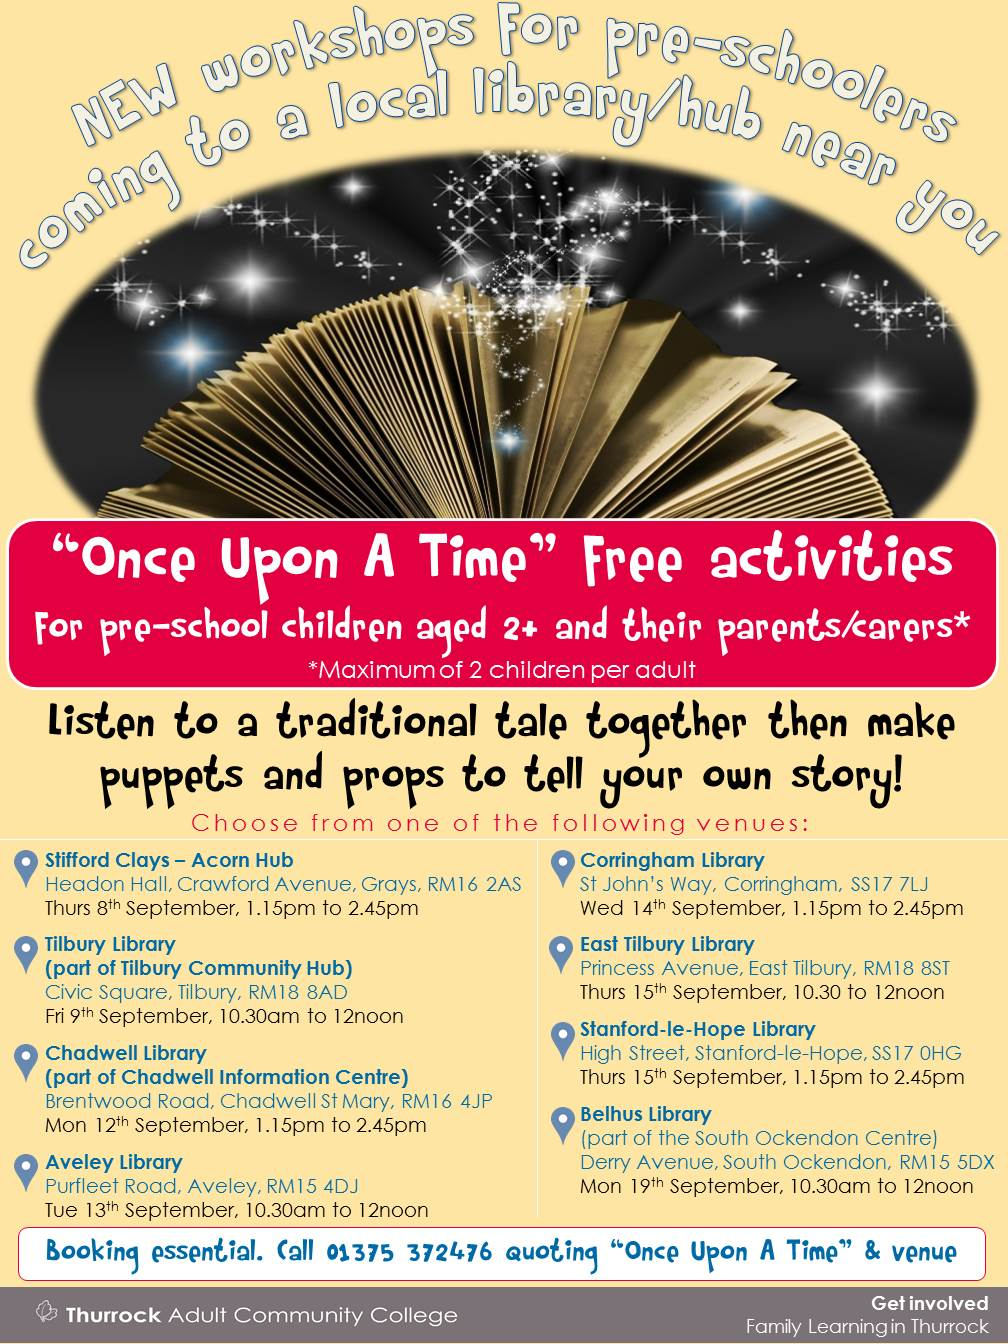 Once Upon A Time: Free workshop for pre-schoolers & parents/carers